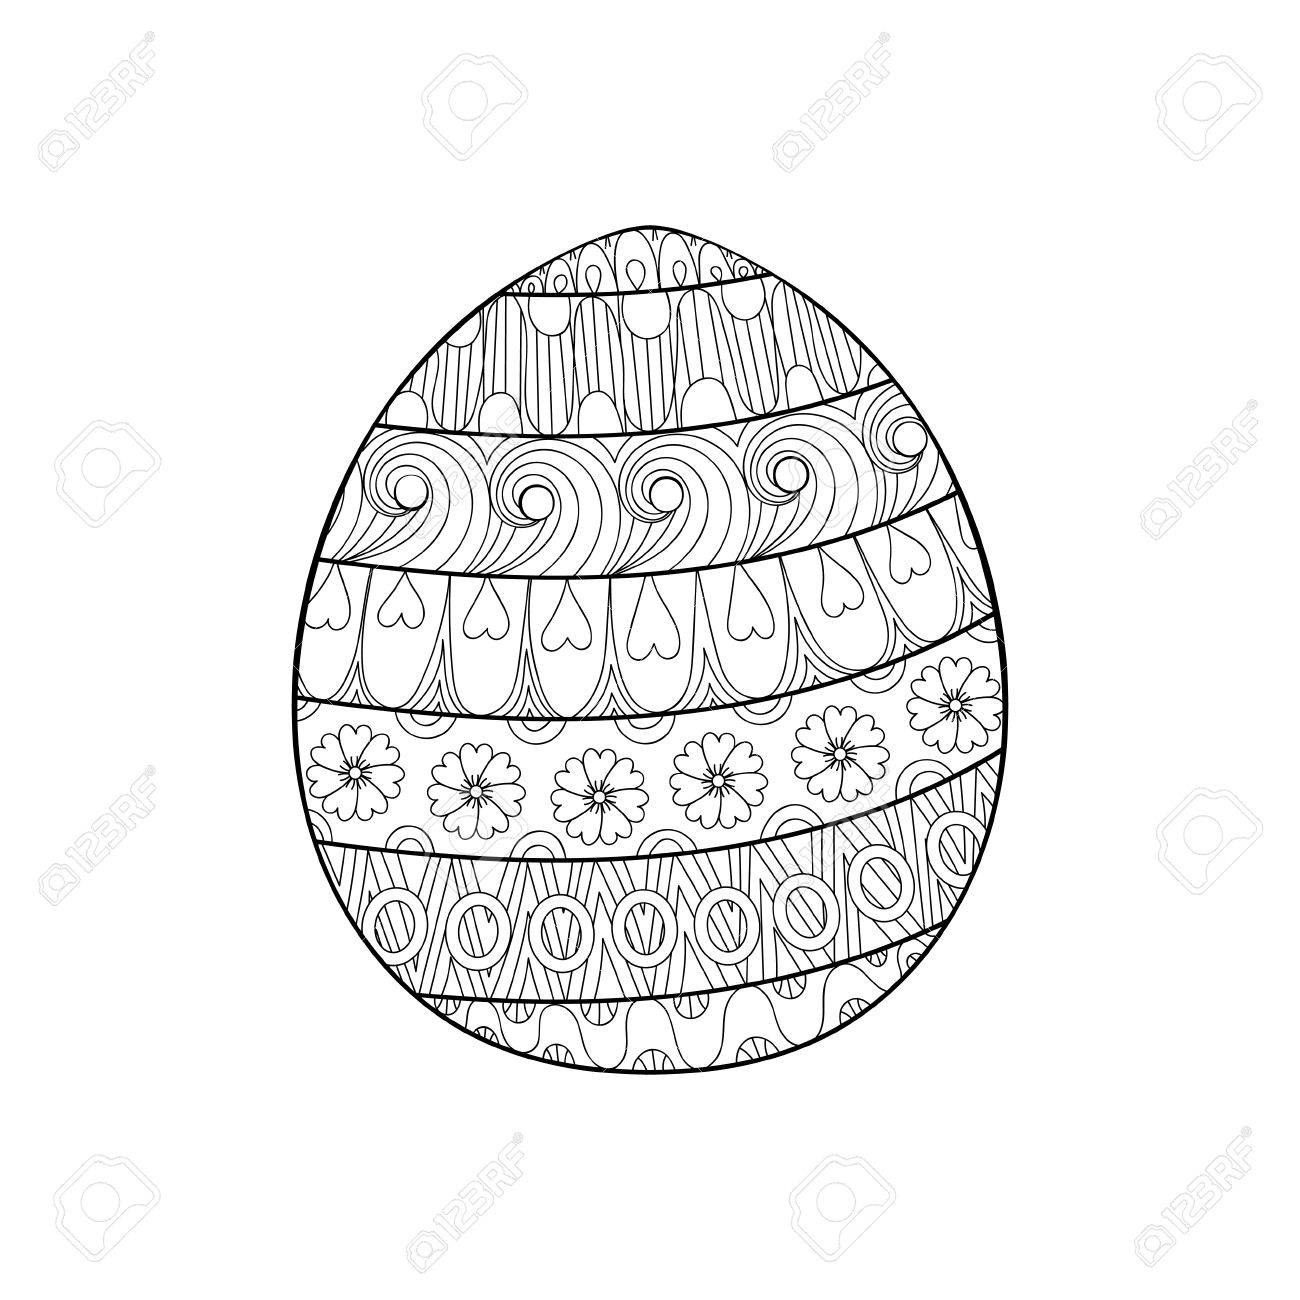 Happy Easter Zentangle Egg Decorated With Ornament Design Doodle Element For Adult Antistress Coloring Pages